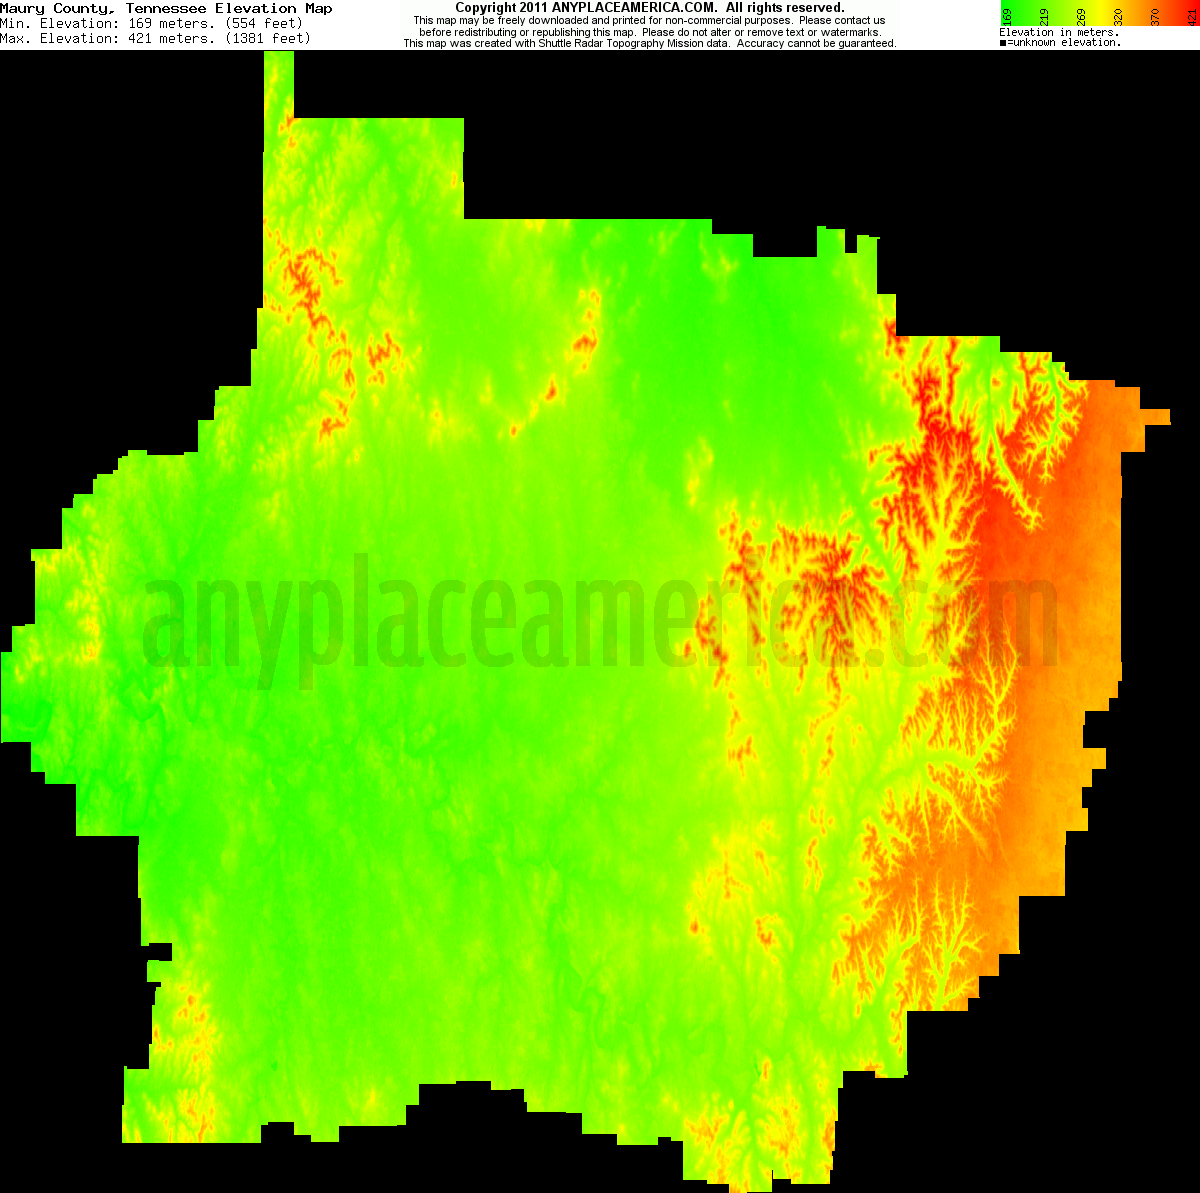 Maury, Tennessee elevation map